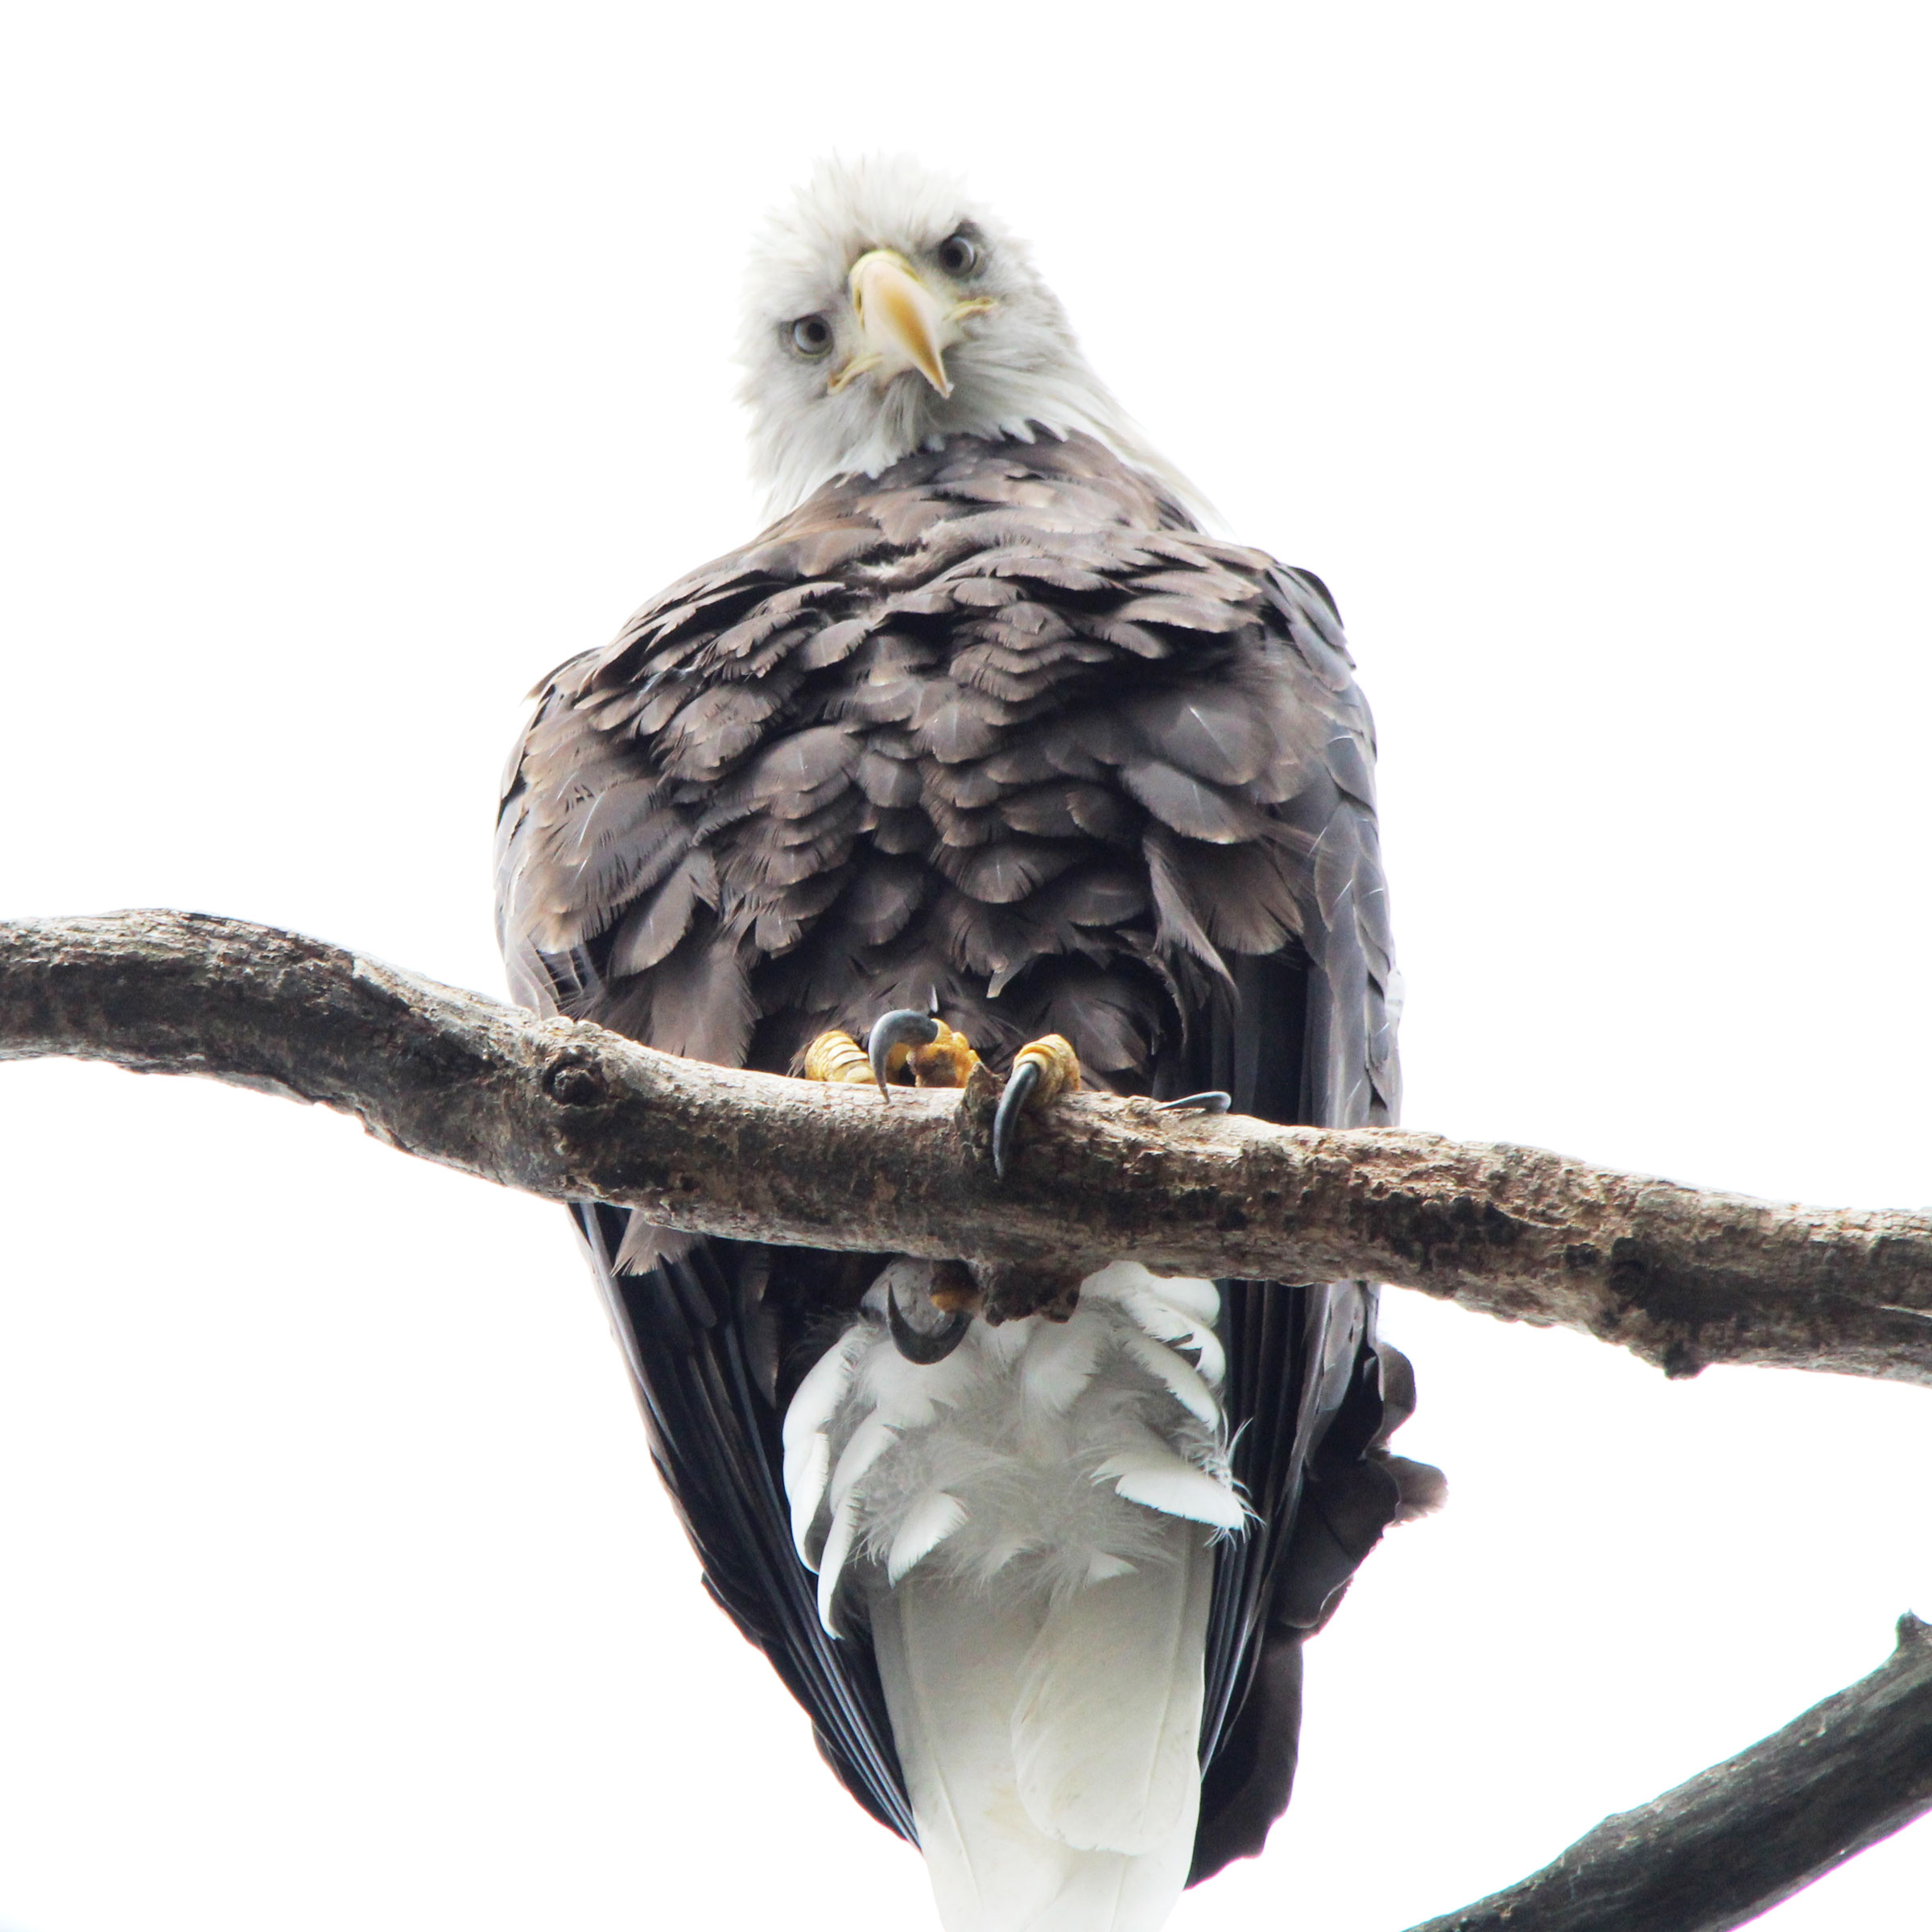 Bryand captured this shot of a Bald Eagle from her kayak by paddling quickly, gliding, and then lying down on her back to snap the photo. Monica Bryand